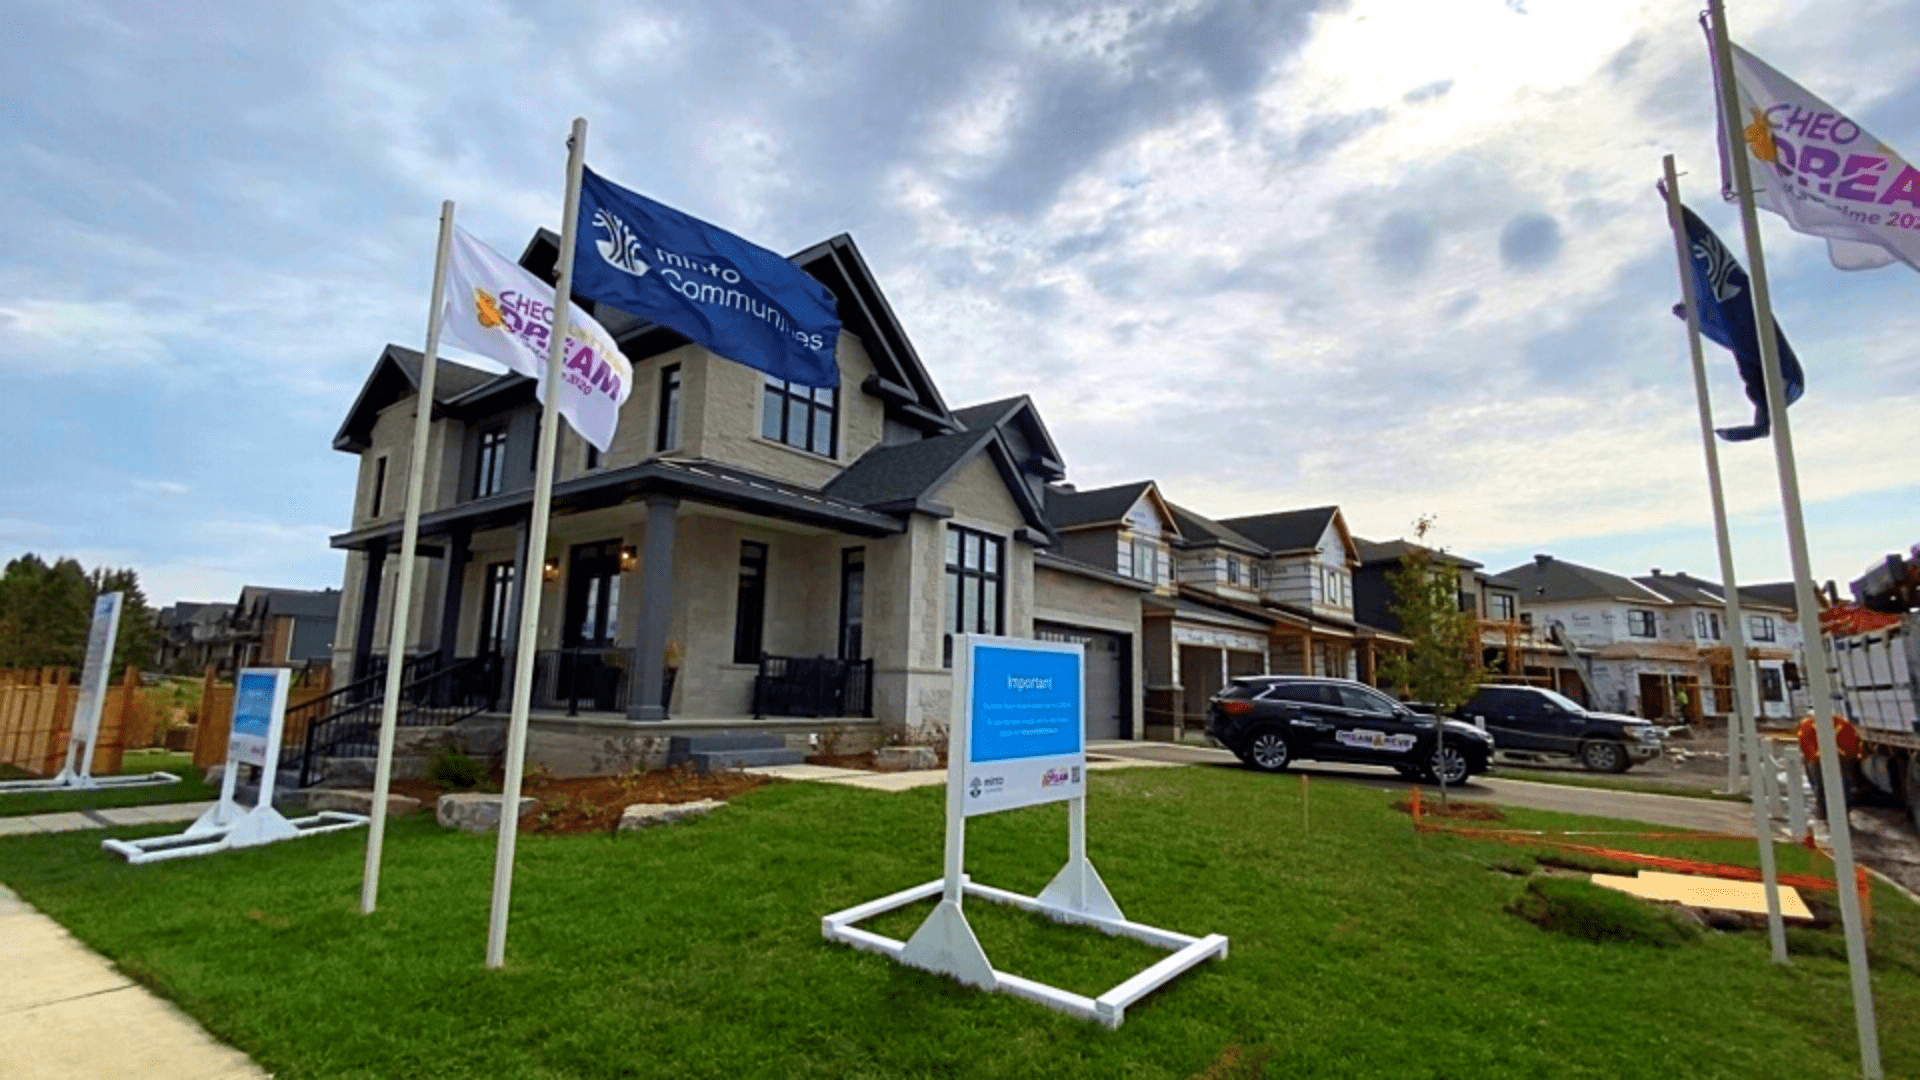 cheo dream of a lifetime home with flags out front